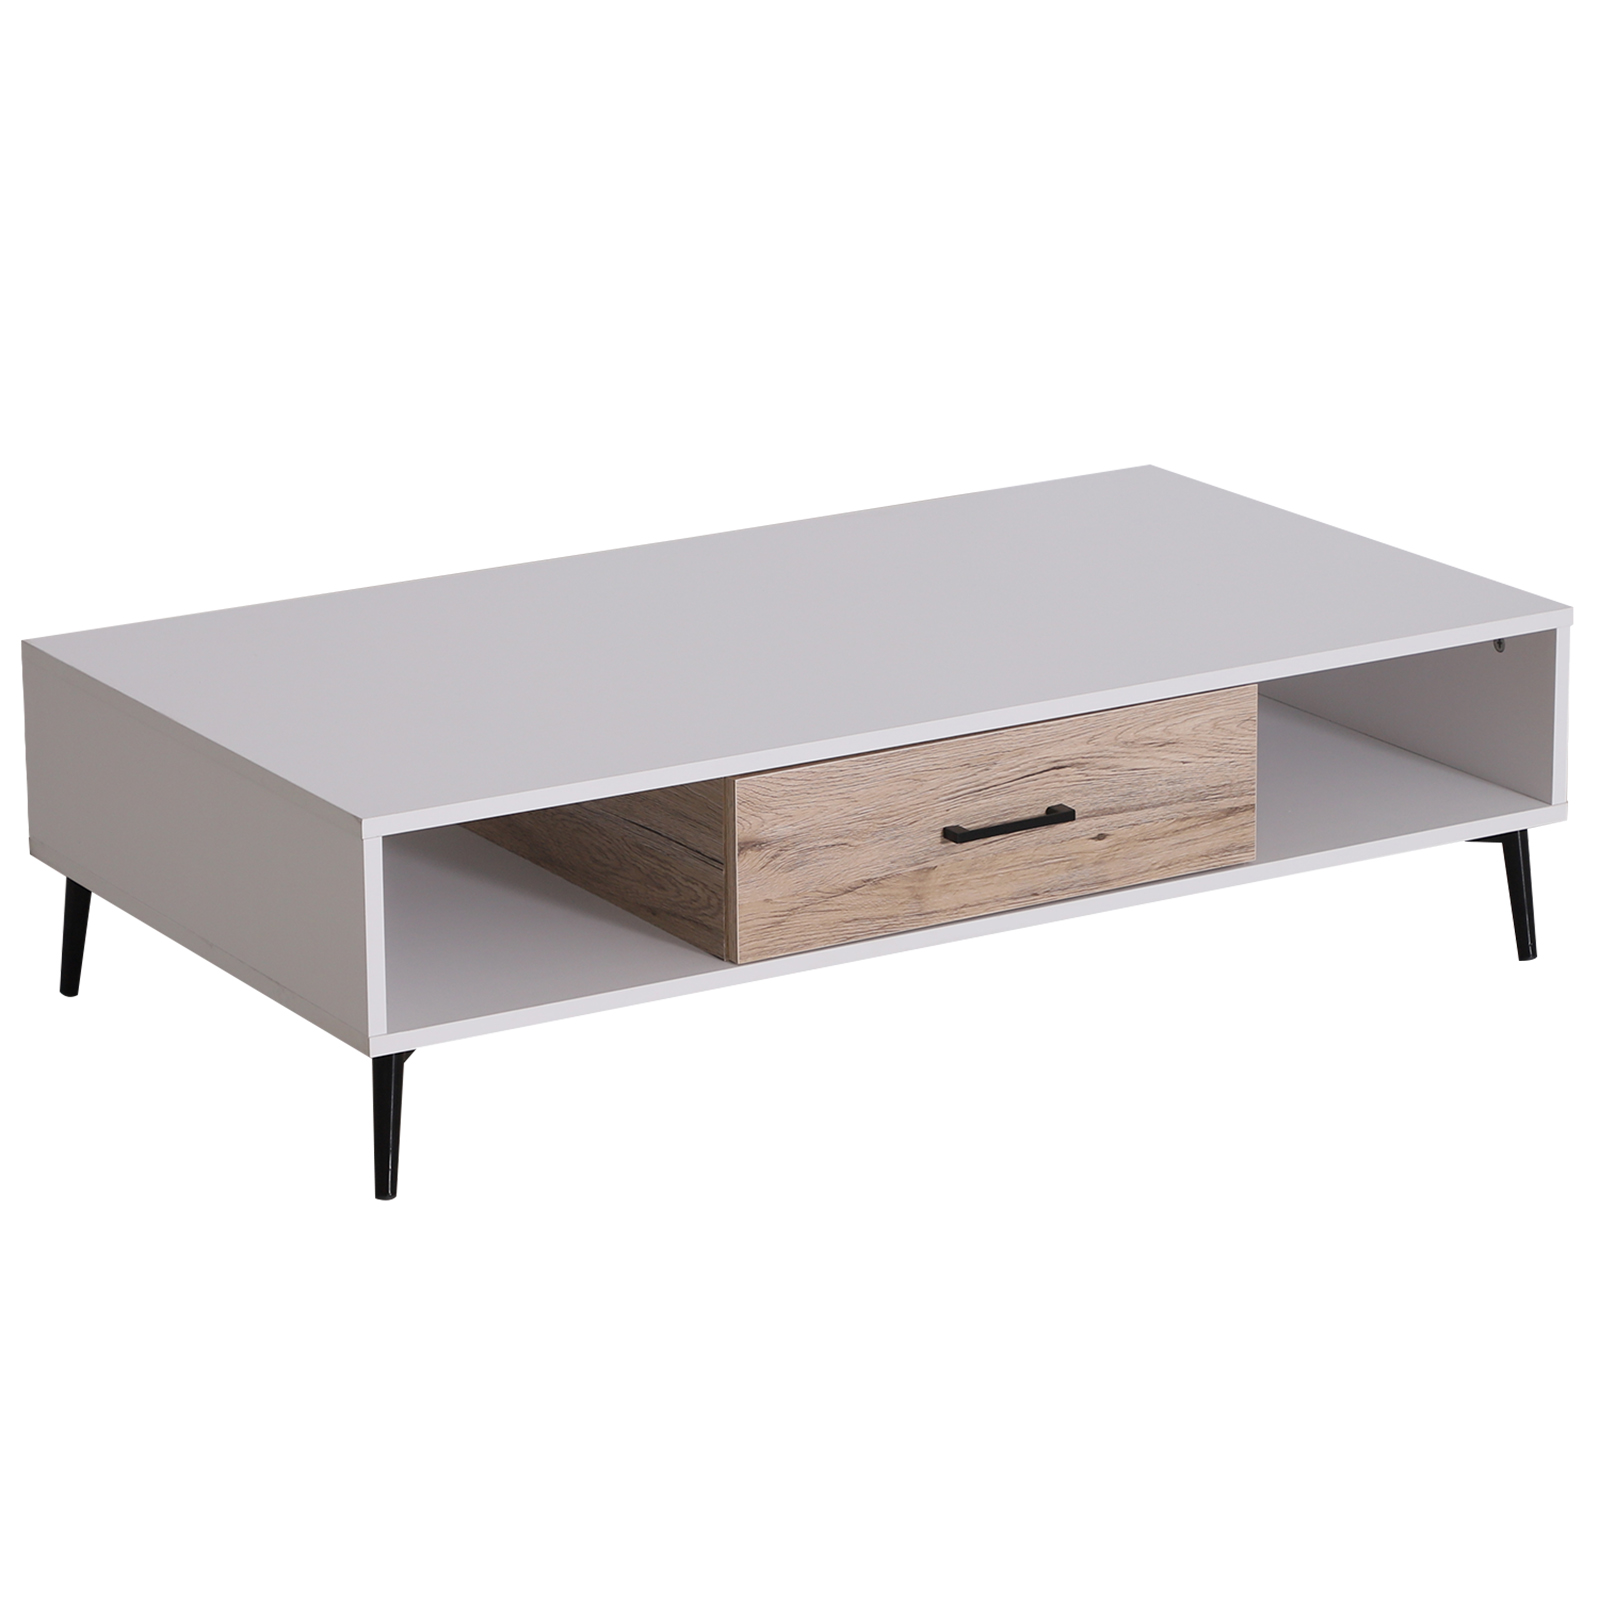 HOMCOM Coffee Table With Drawer And 2 Shelves Stems Metal For Living Room Living Room Wood 110x60x30 Cm White